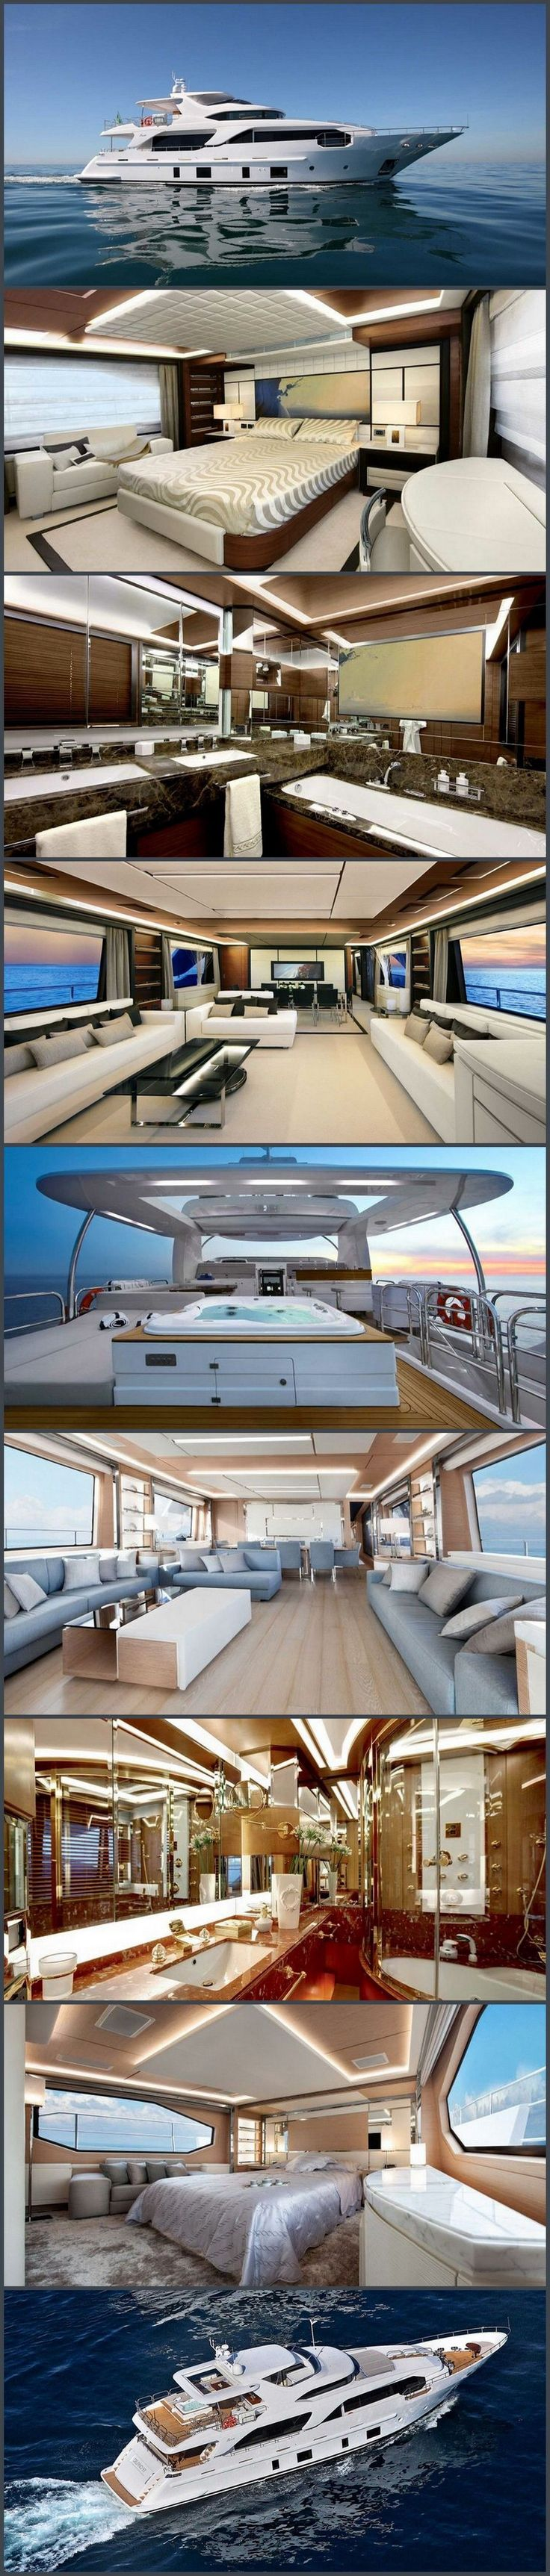 This is one of my favorite yachts beautiful interior and a nice exterior